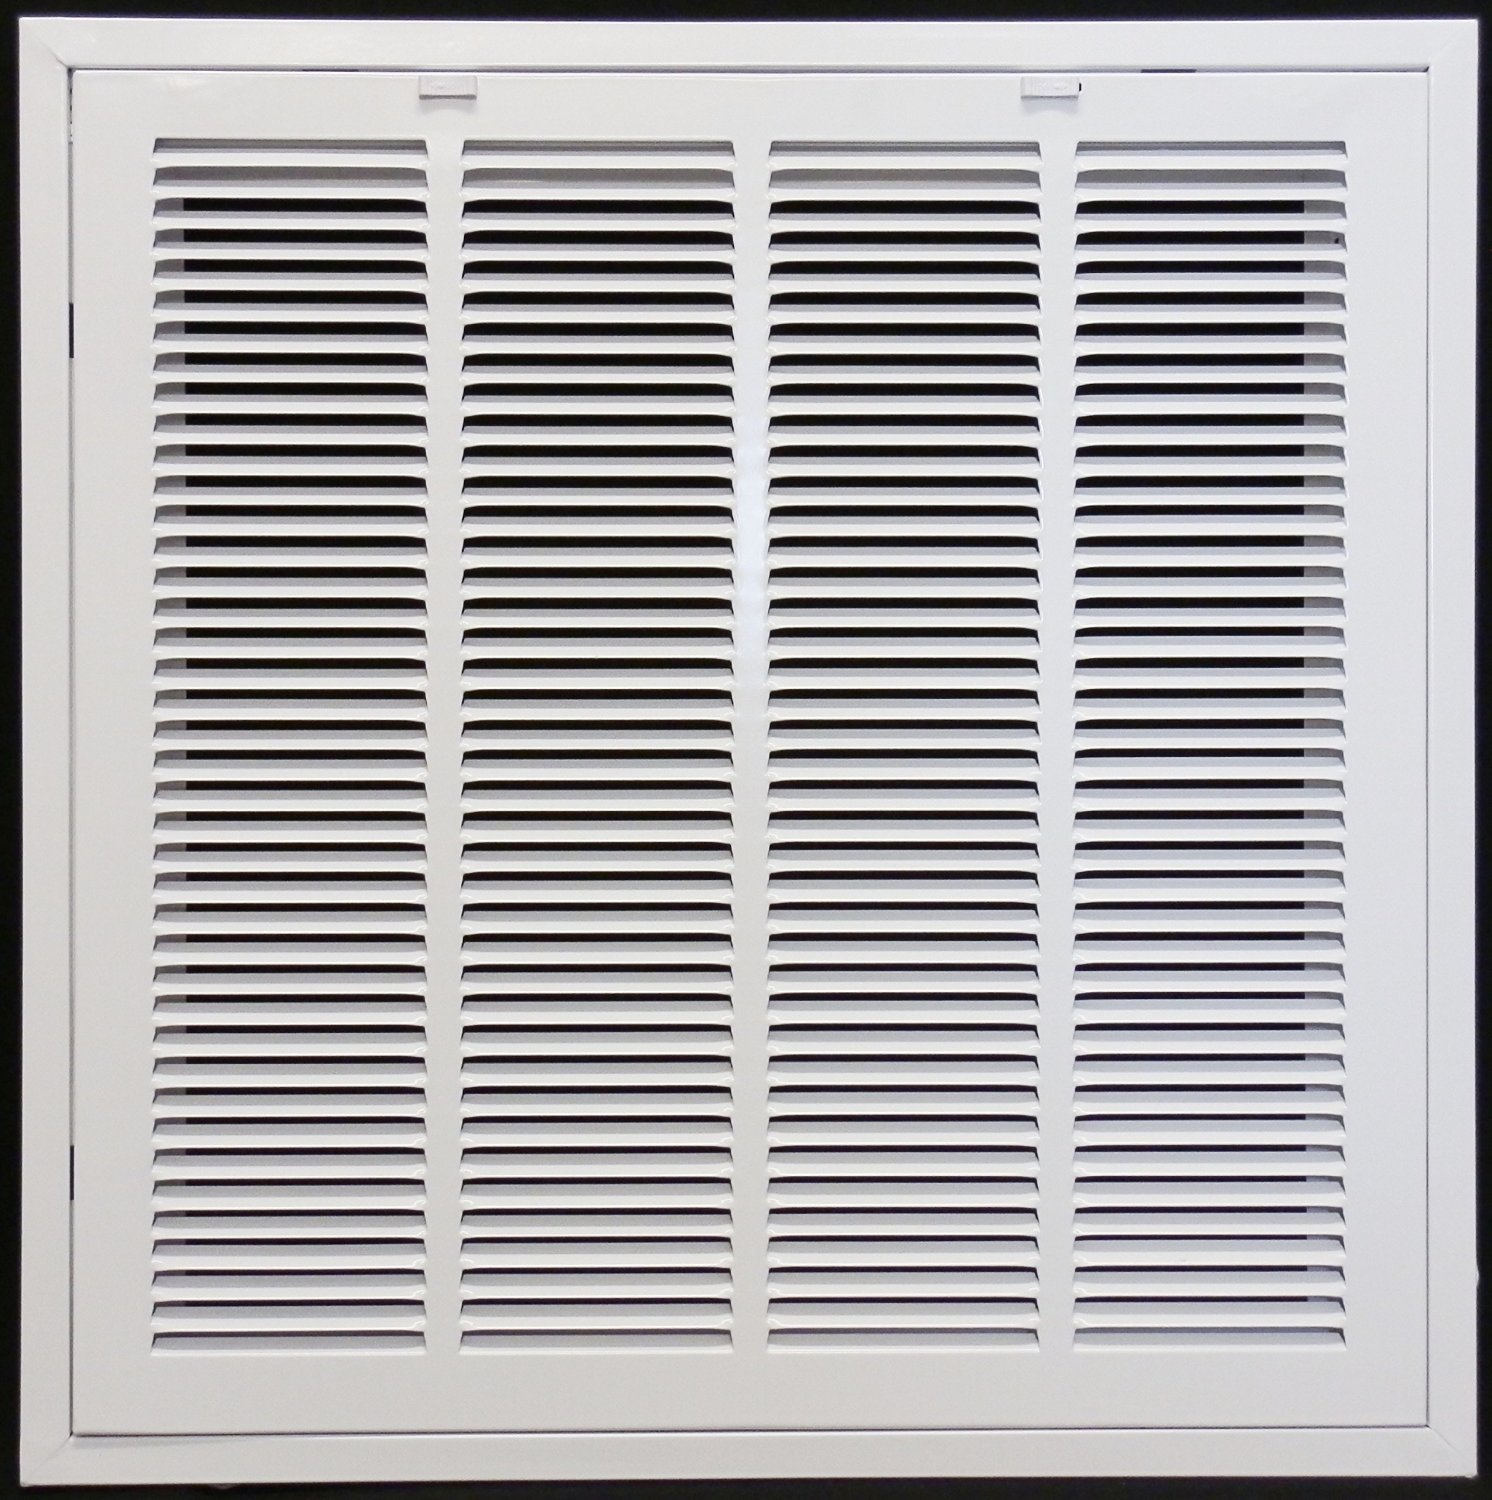 HVAC Duct Cover 30 X 10 Steel Return Air Filter Grille for 1